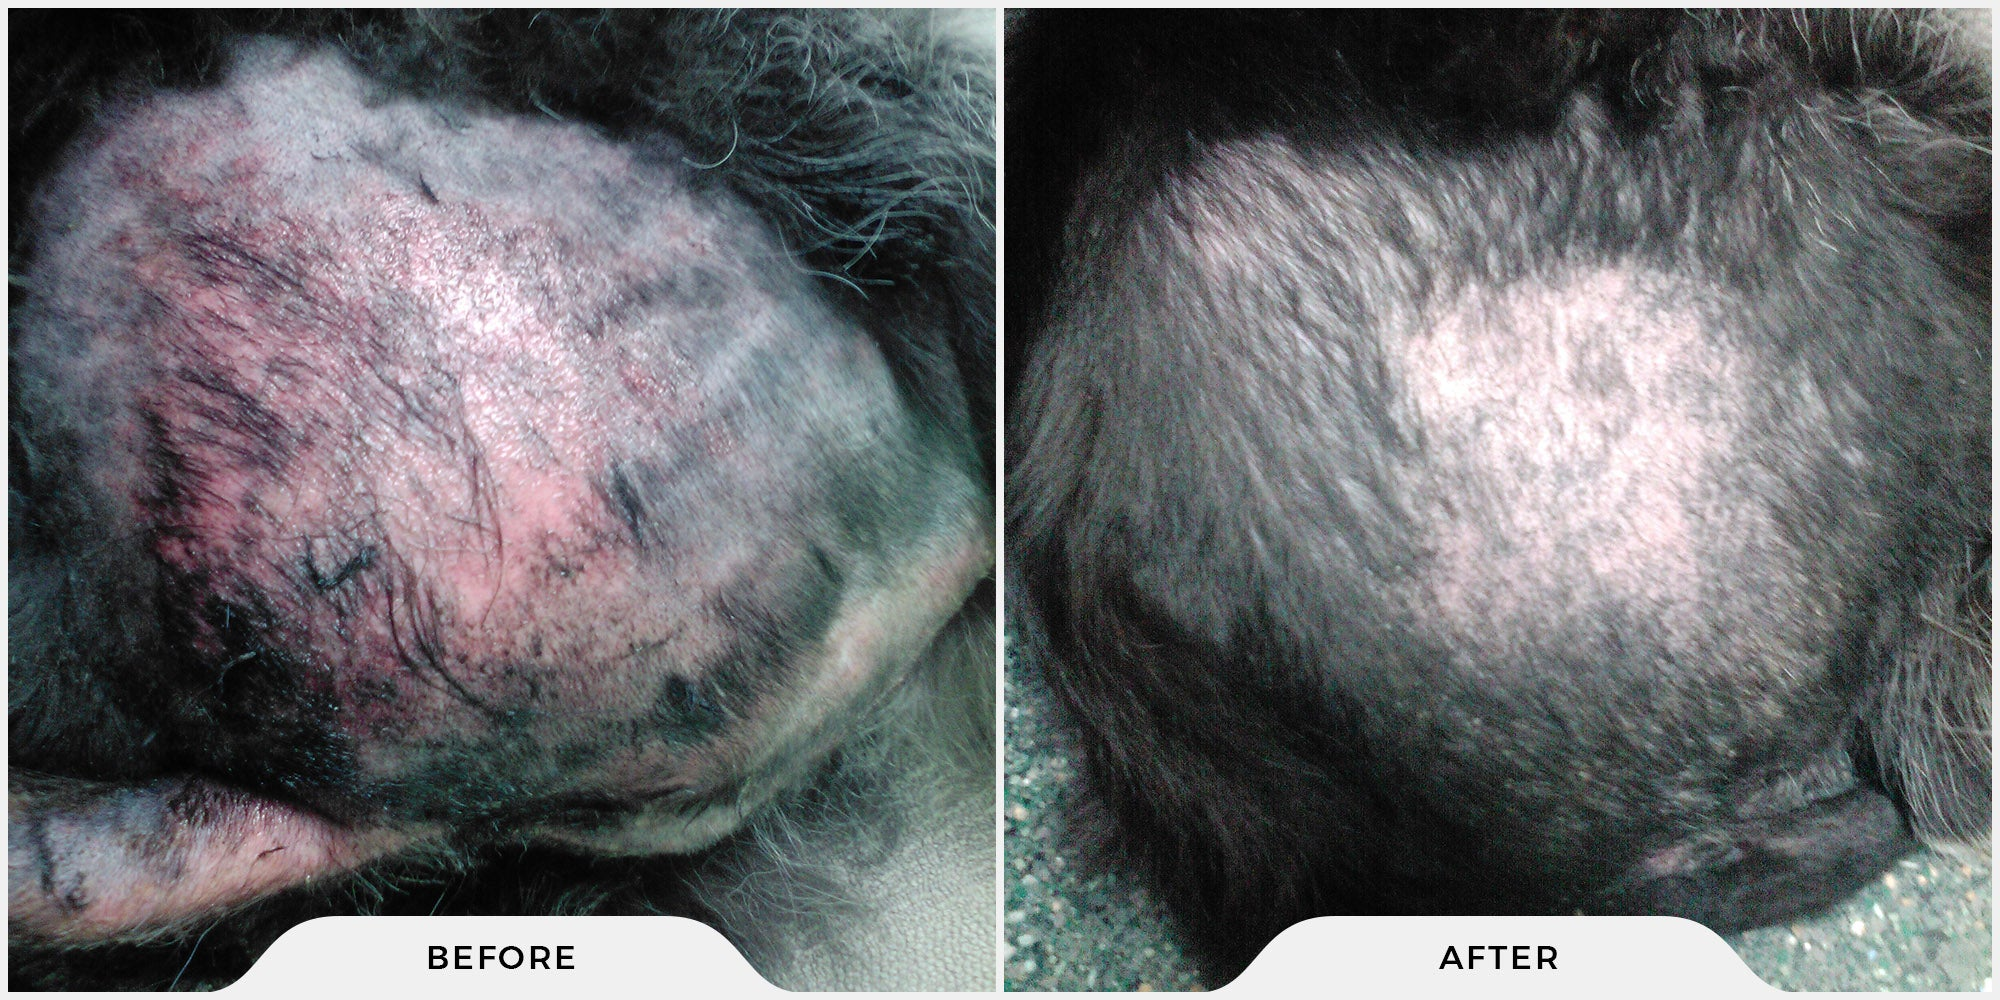 Dog skin condition repair before and after results